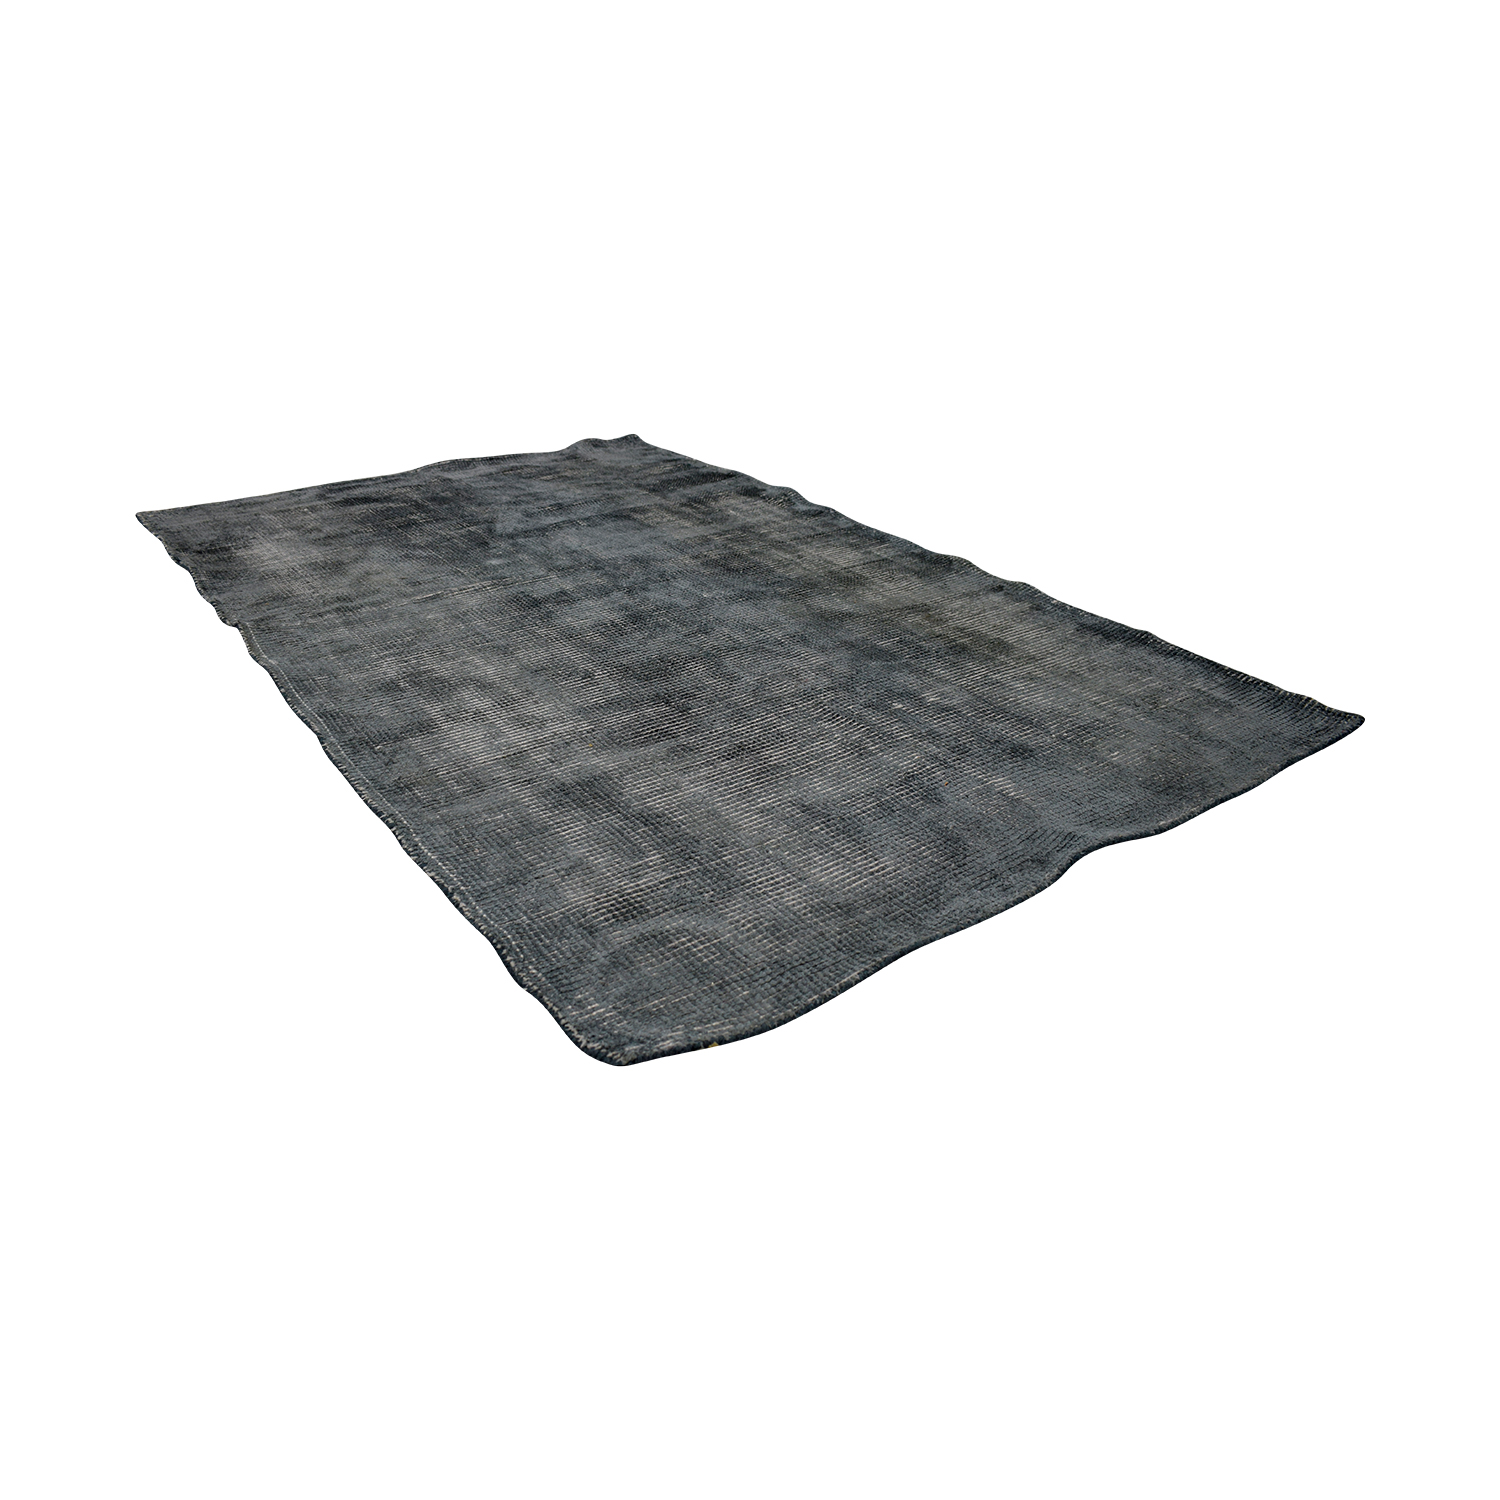 shop CB2 CB2 New Zealand Wool Scatter Grey Rug online